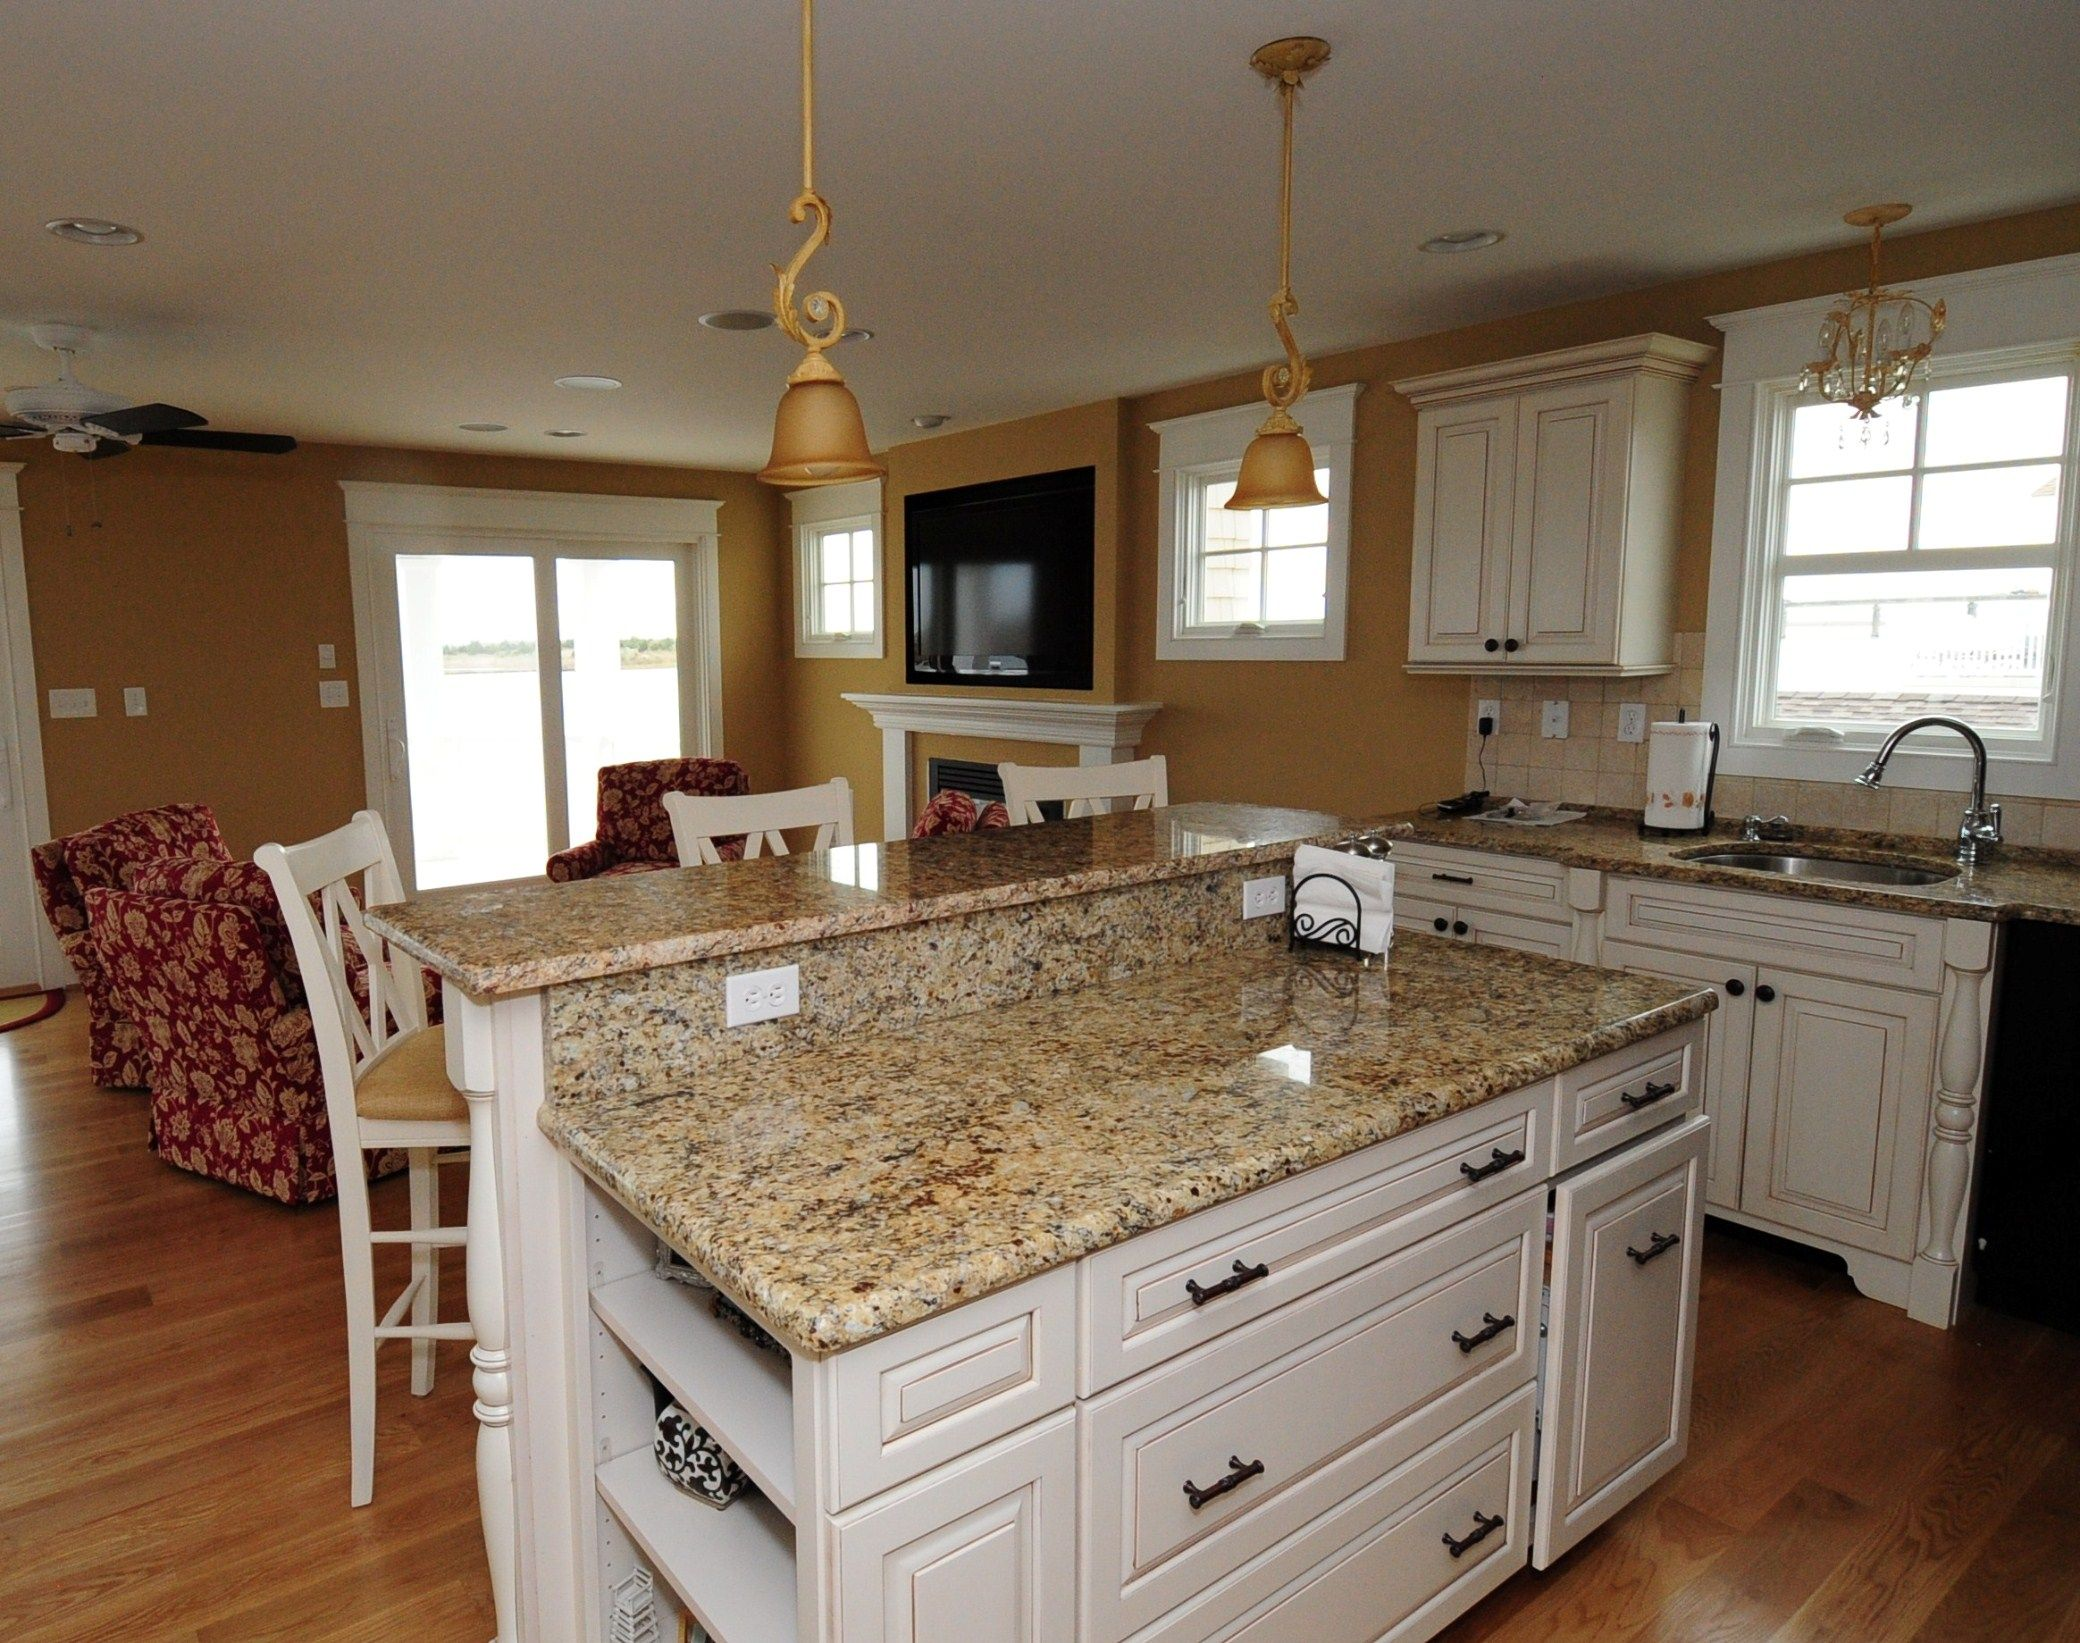 Colors Of Granite Kitchen Countertops Kitchen Best Granite Colors For White Cabinets With Tv On Wall